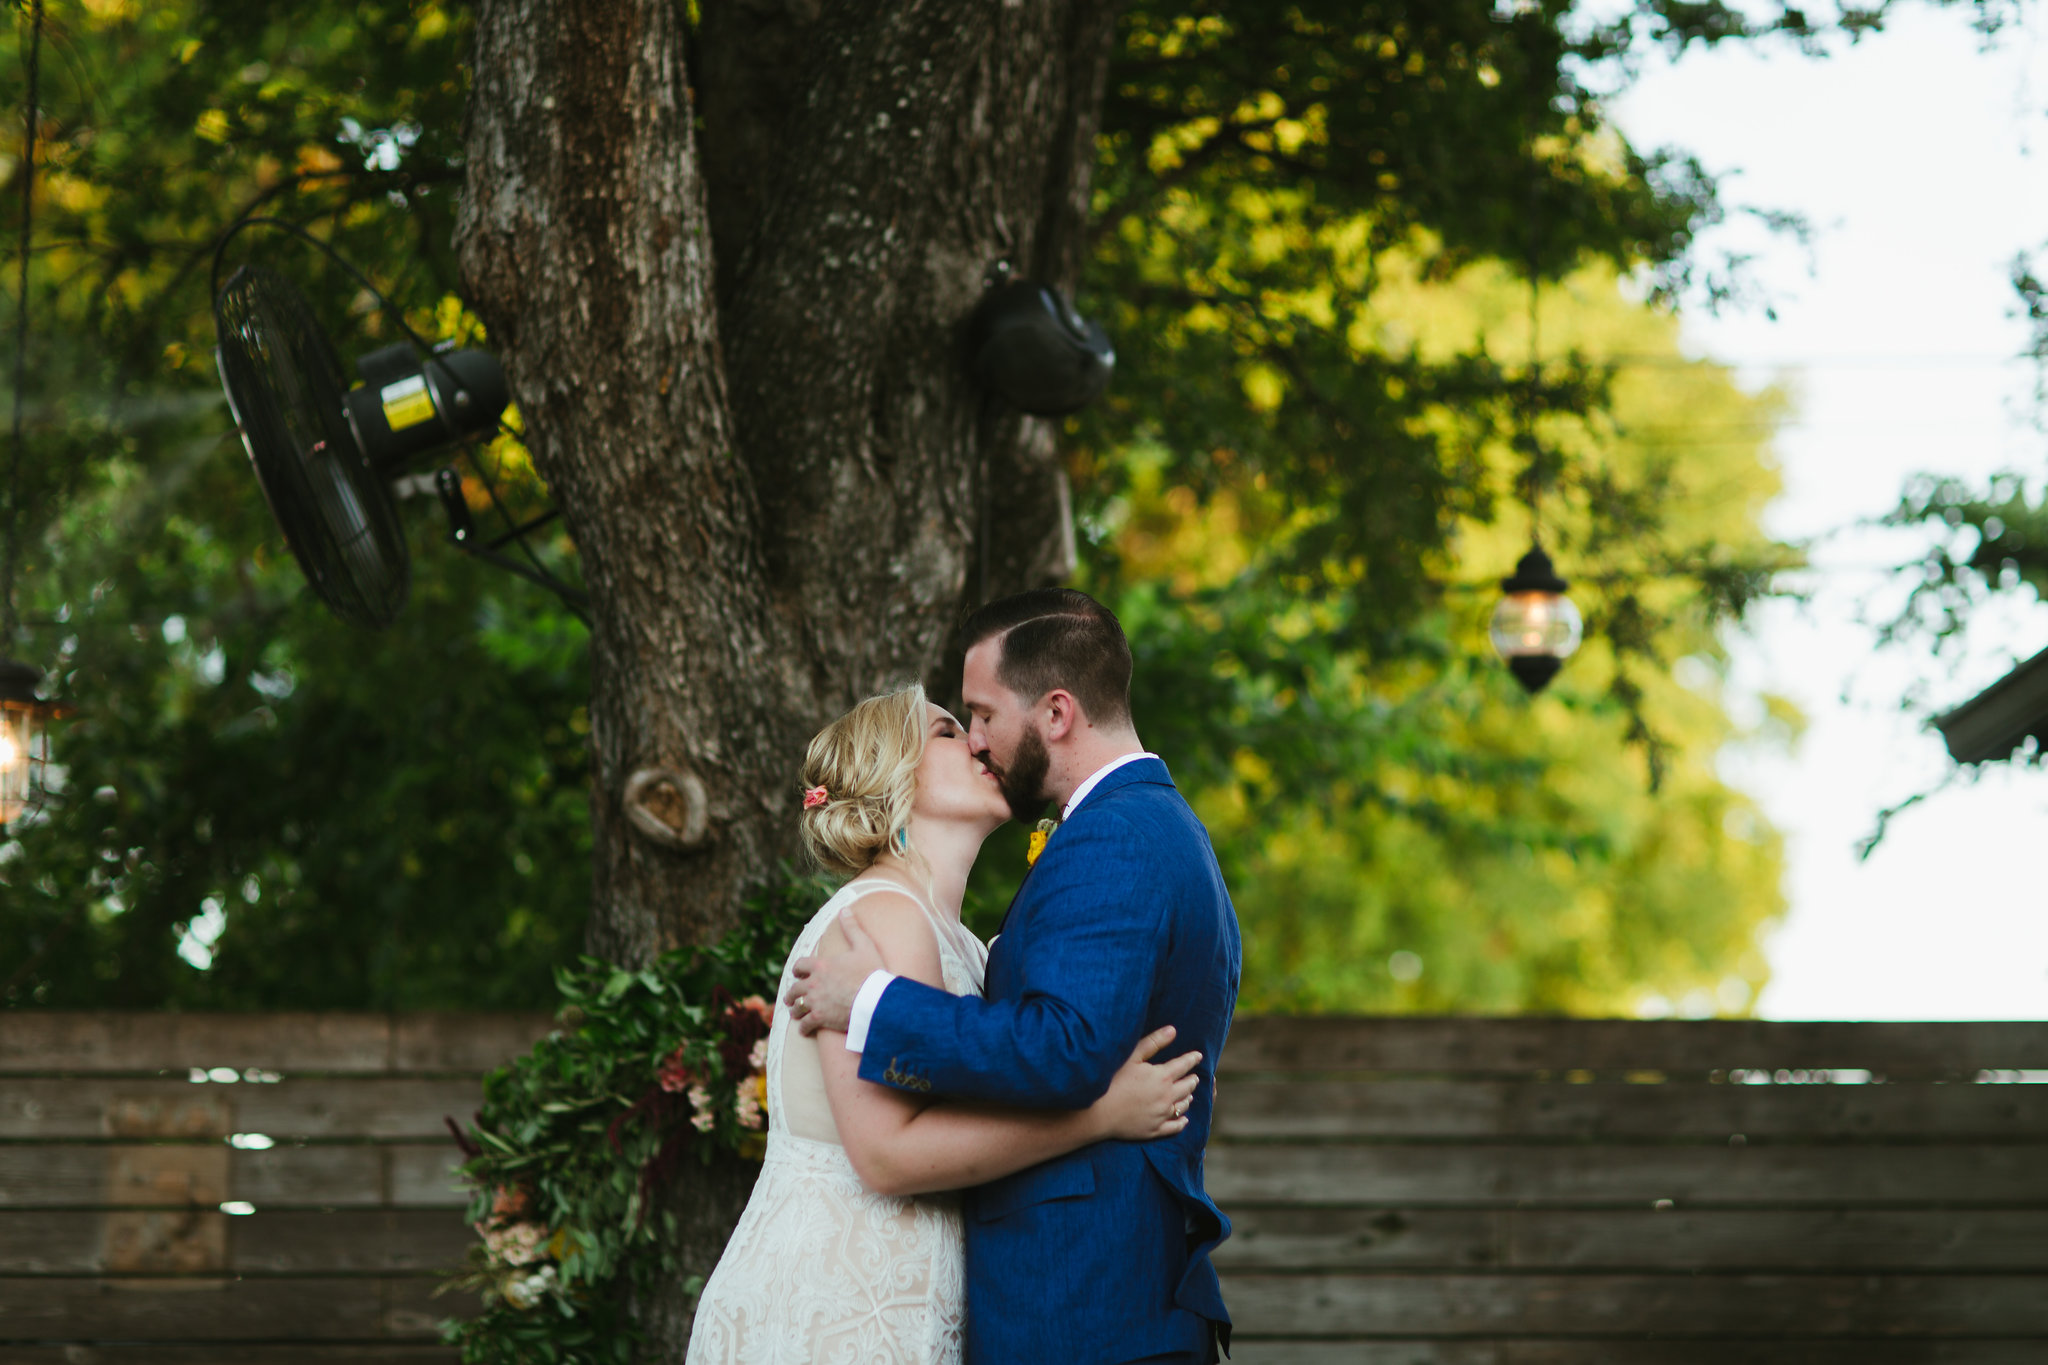 Paige-Newton-Intimate-Wedding-Photographer-Contigo-Wedding-Austin-Texas0078.jpg